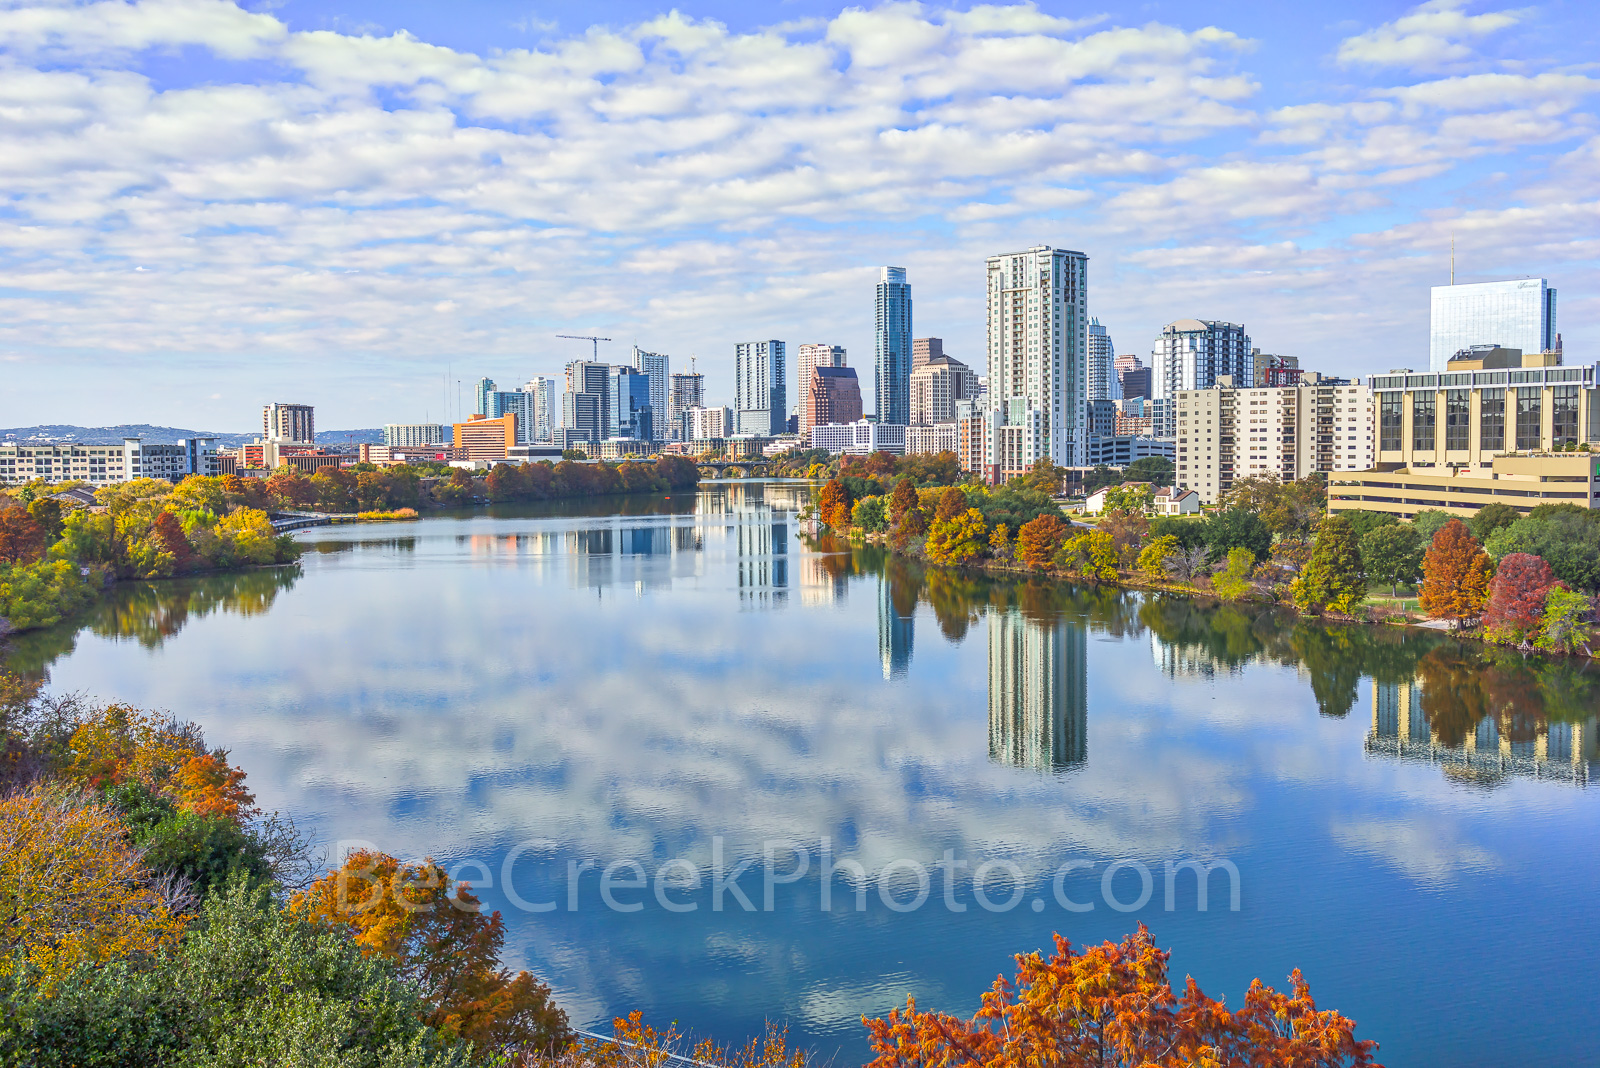 Austin skyline, fall, Lady Bird Lake, colors, aerial, shoreline, water reflections, buildings, trees, high rise, buildings, clouds, banks. downtown, Live Music Capital of teh World, Apple, IBM, drone,, photo